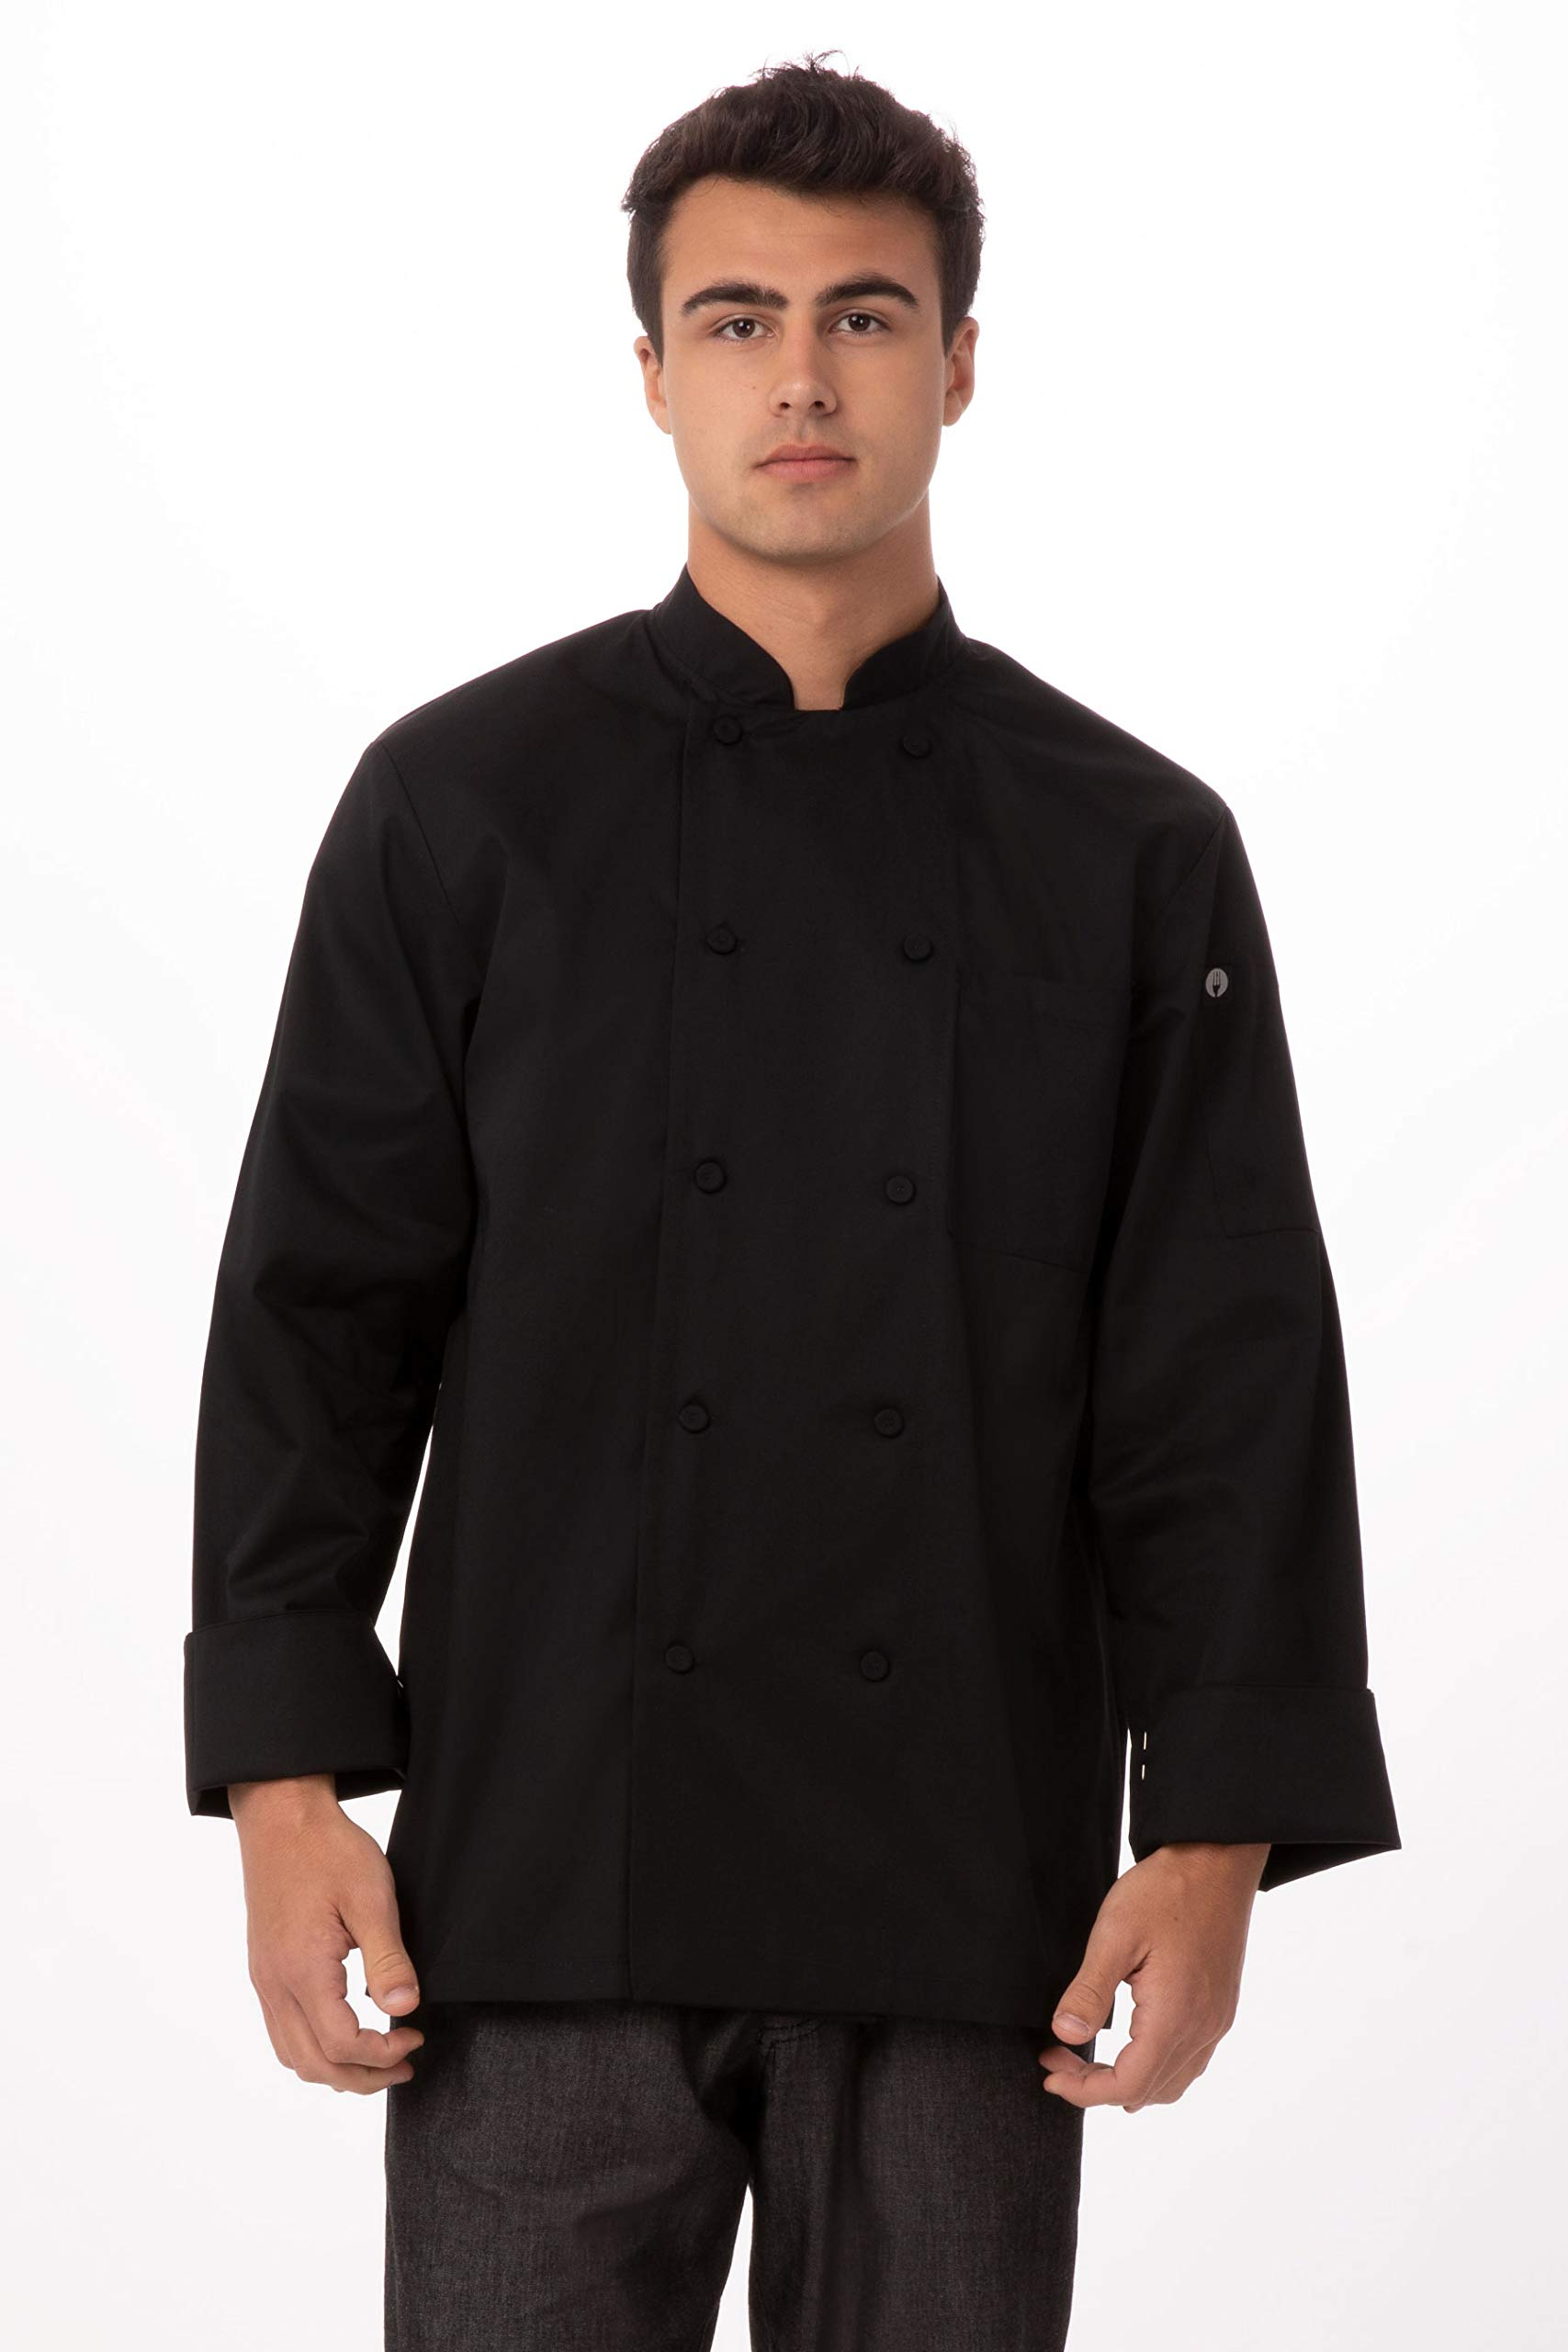 Chef Works Men's Calgary Cool Vent Chef Coat, Black, 4X-Large by Chef Works